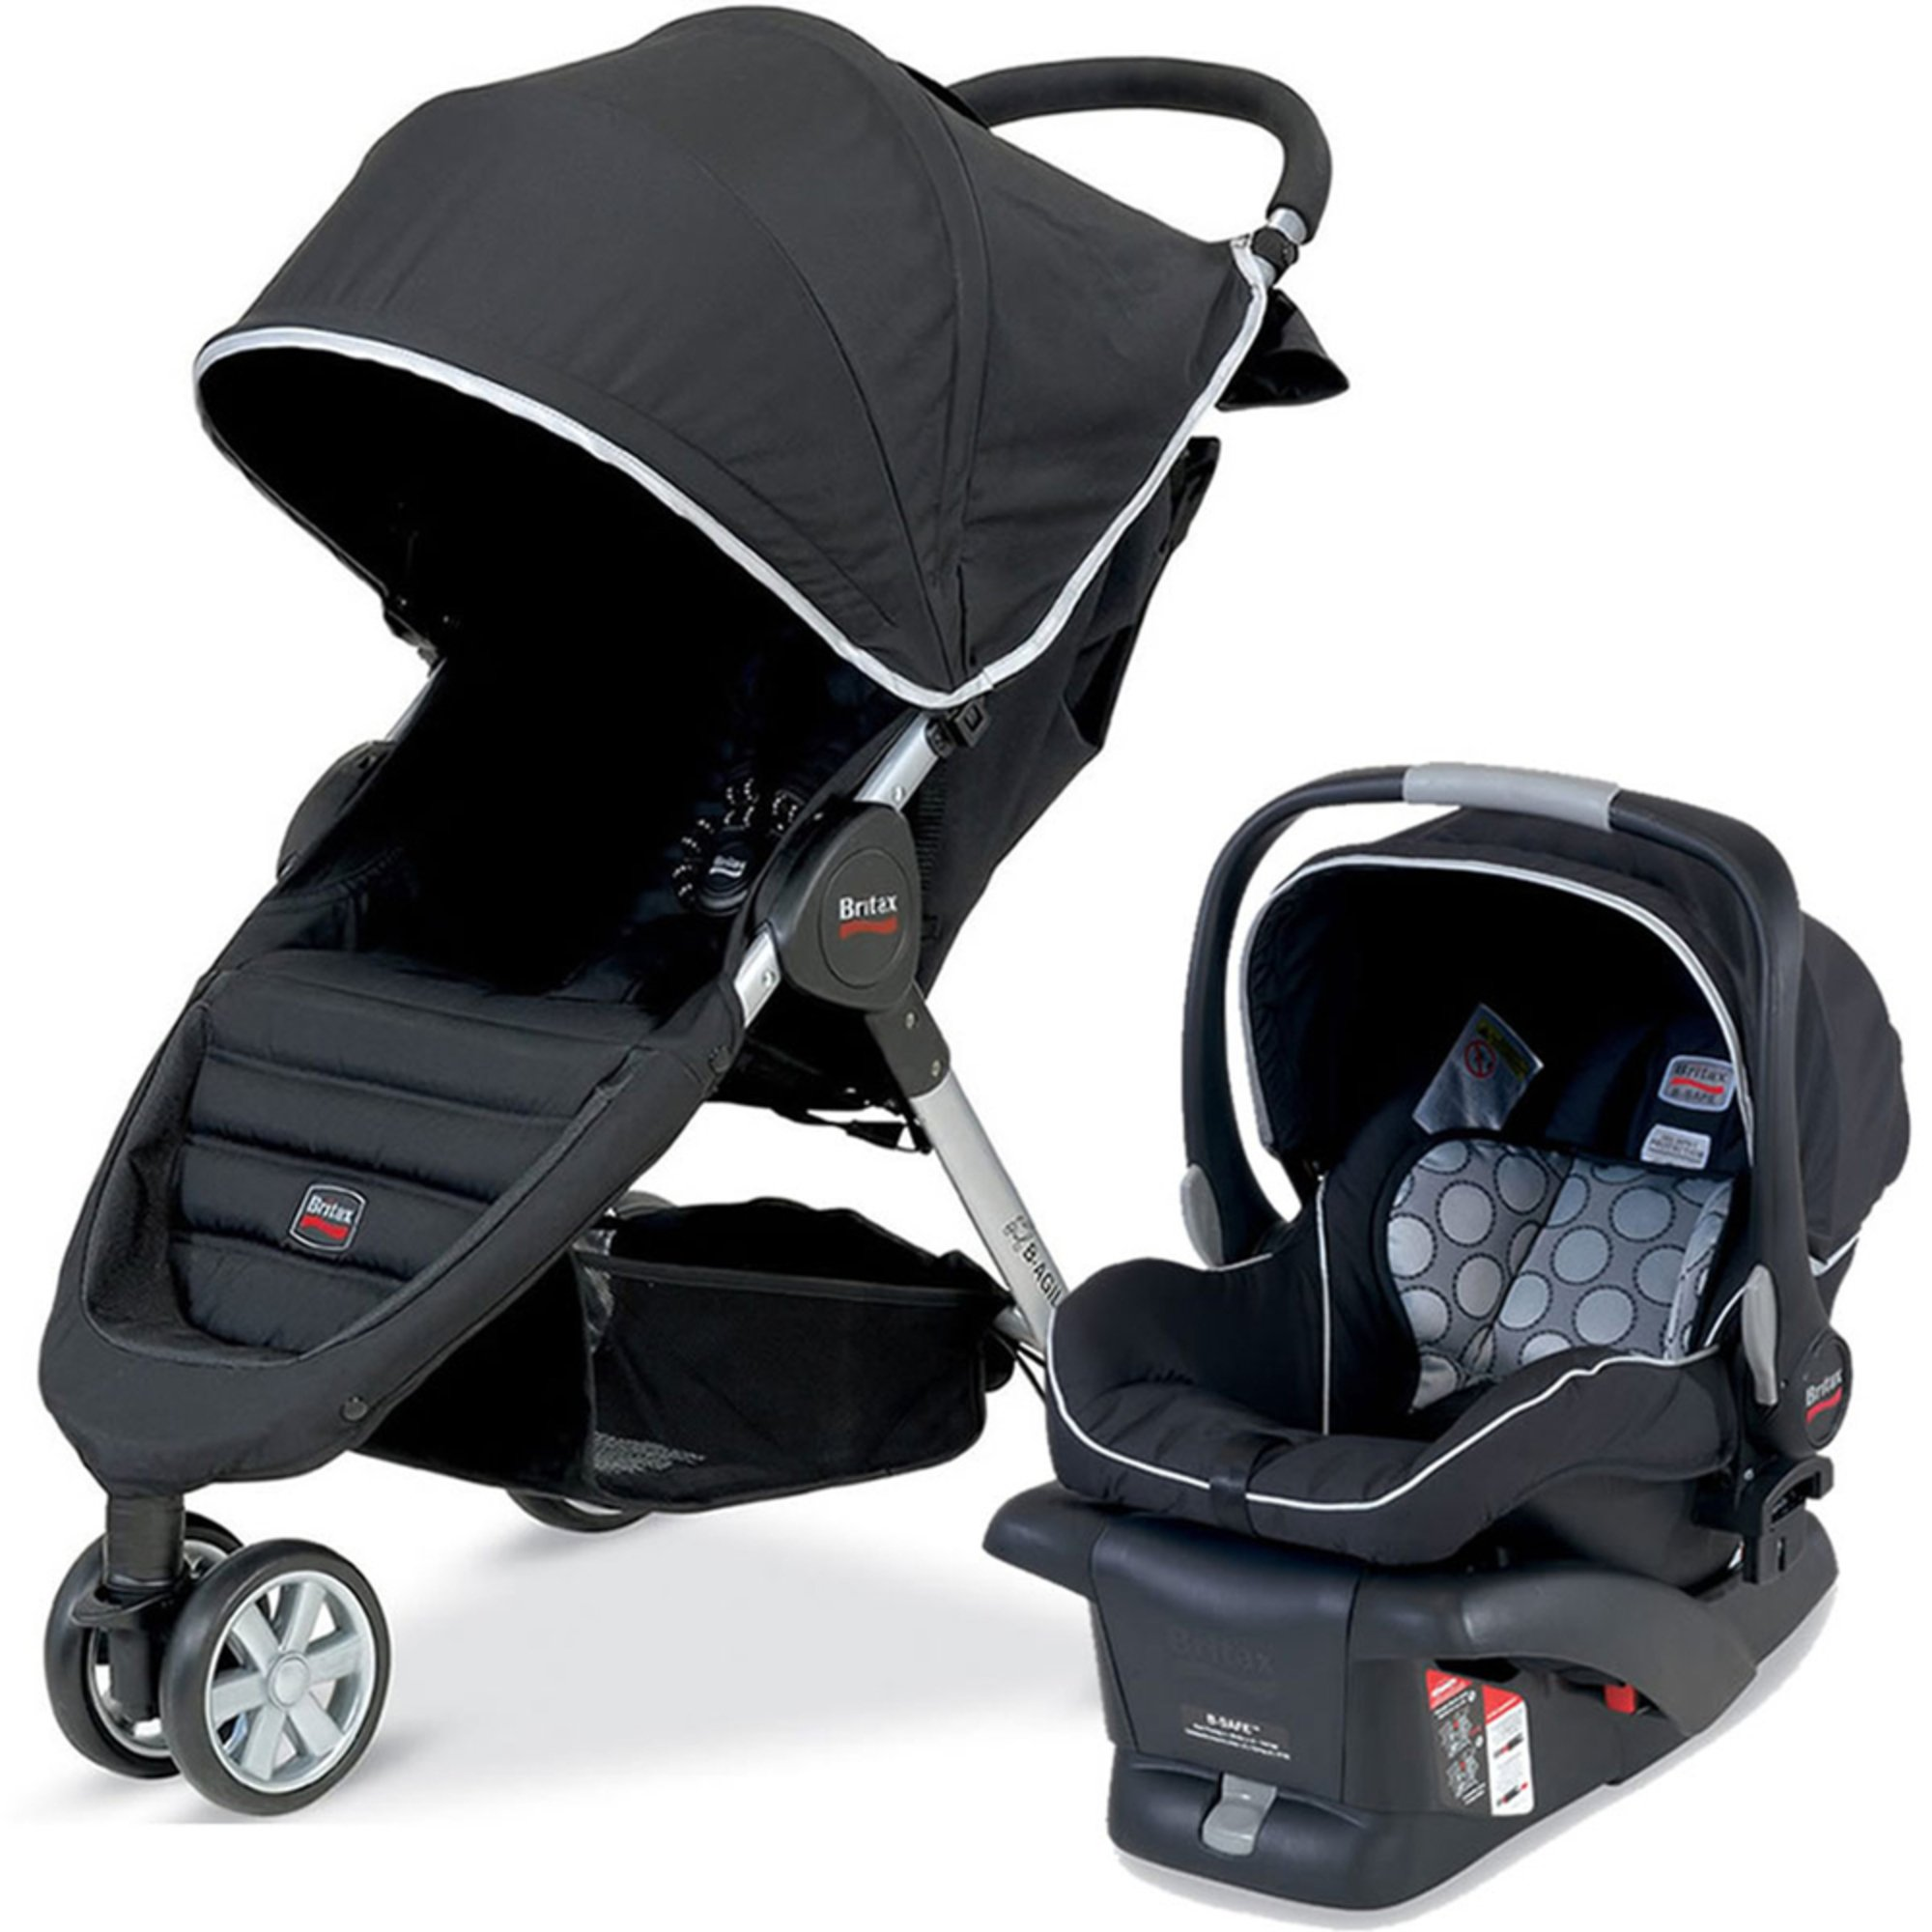 britax b agile travel system black travel systems kids shop your navy exchange official. Black Bedroom Furniture Sets. Home Design Ideas